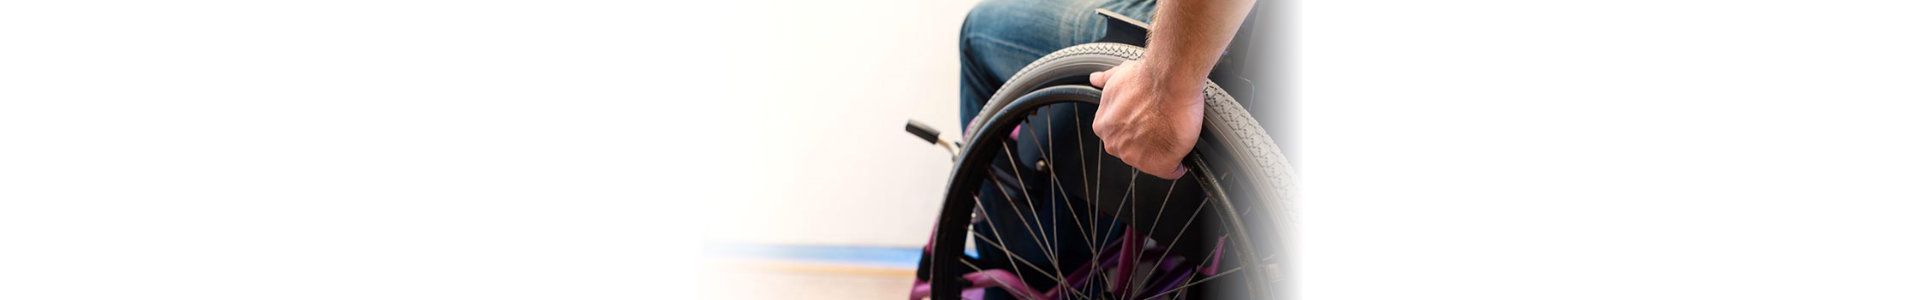 person holding to the wheel of a wheelchair